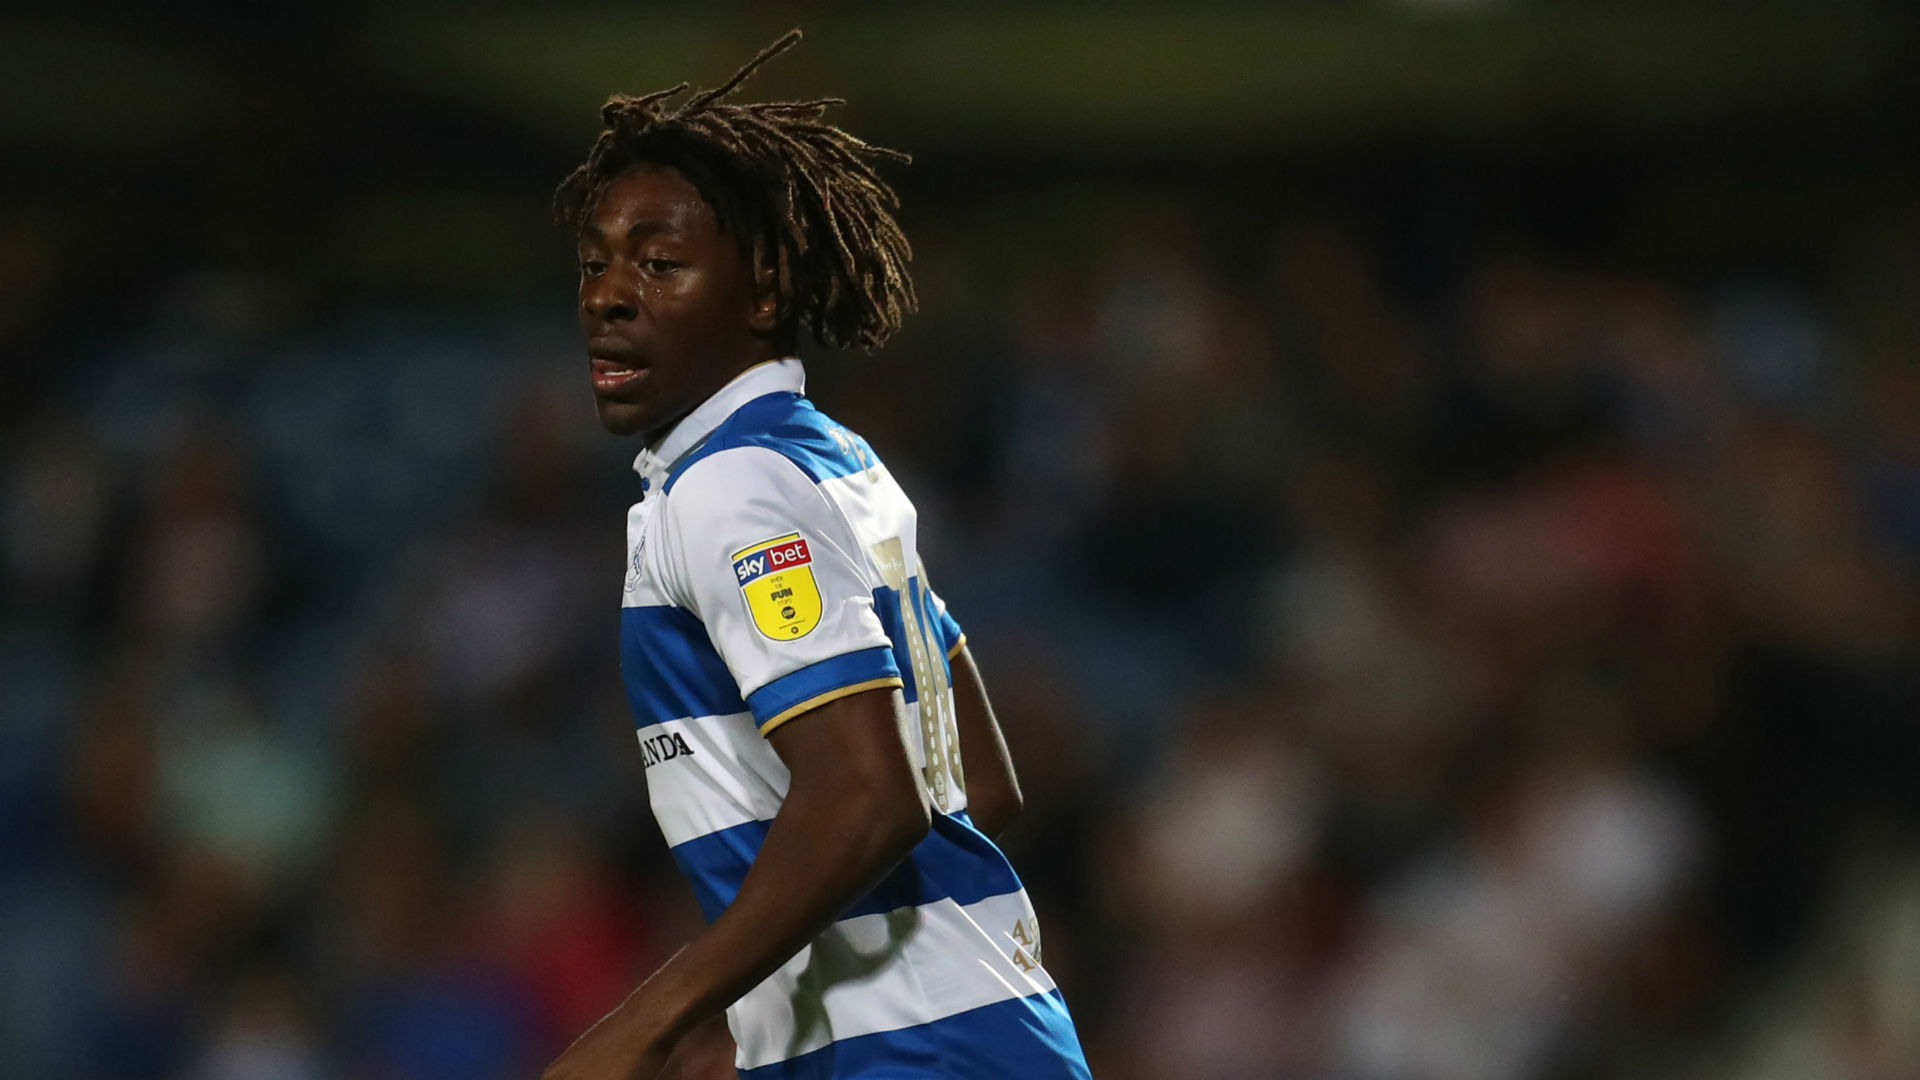 Benrahma scores as Eze and Osayi-Samuel suffer defeat with QPR against Brentford